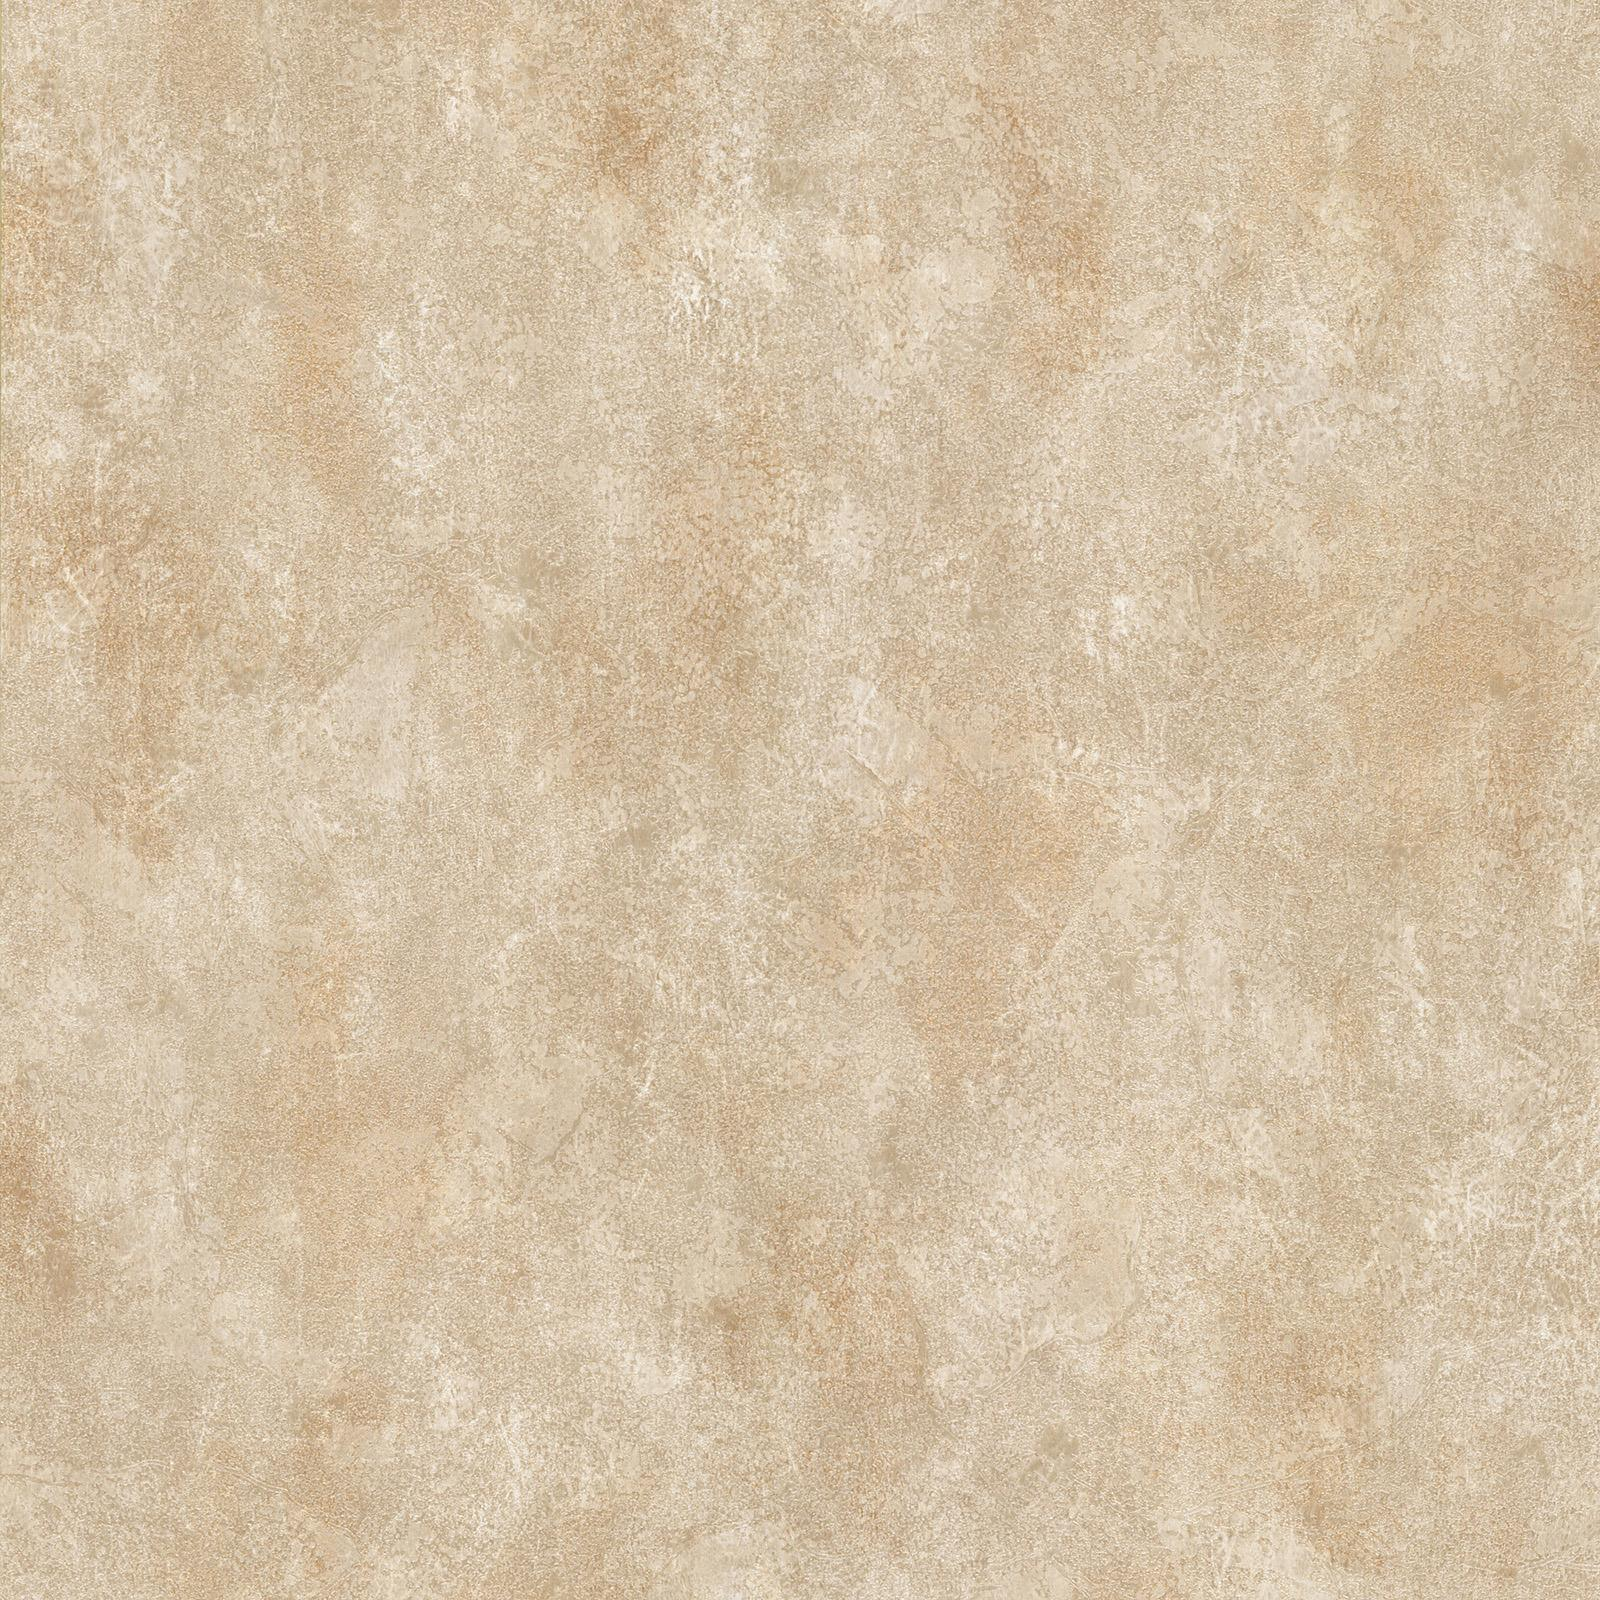 Brewster Corinne Tuscan Texture Wallpaper Pearl